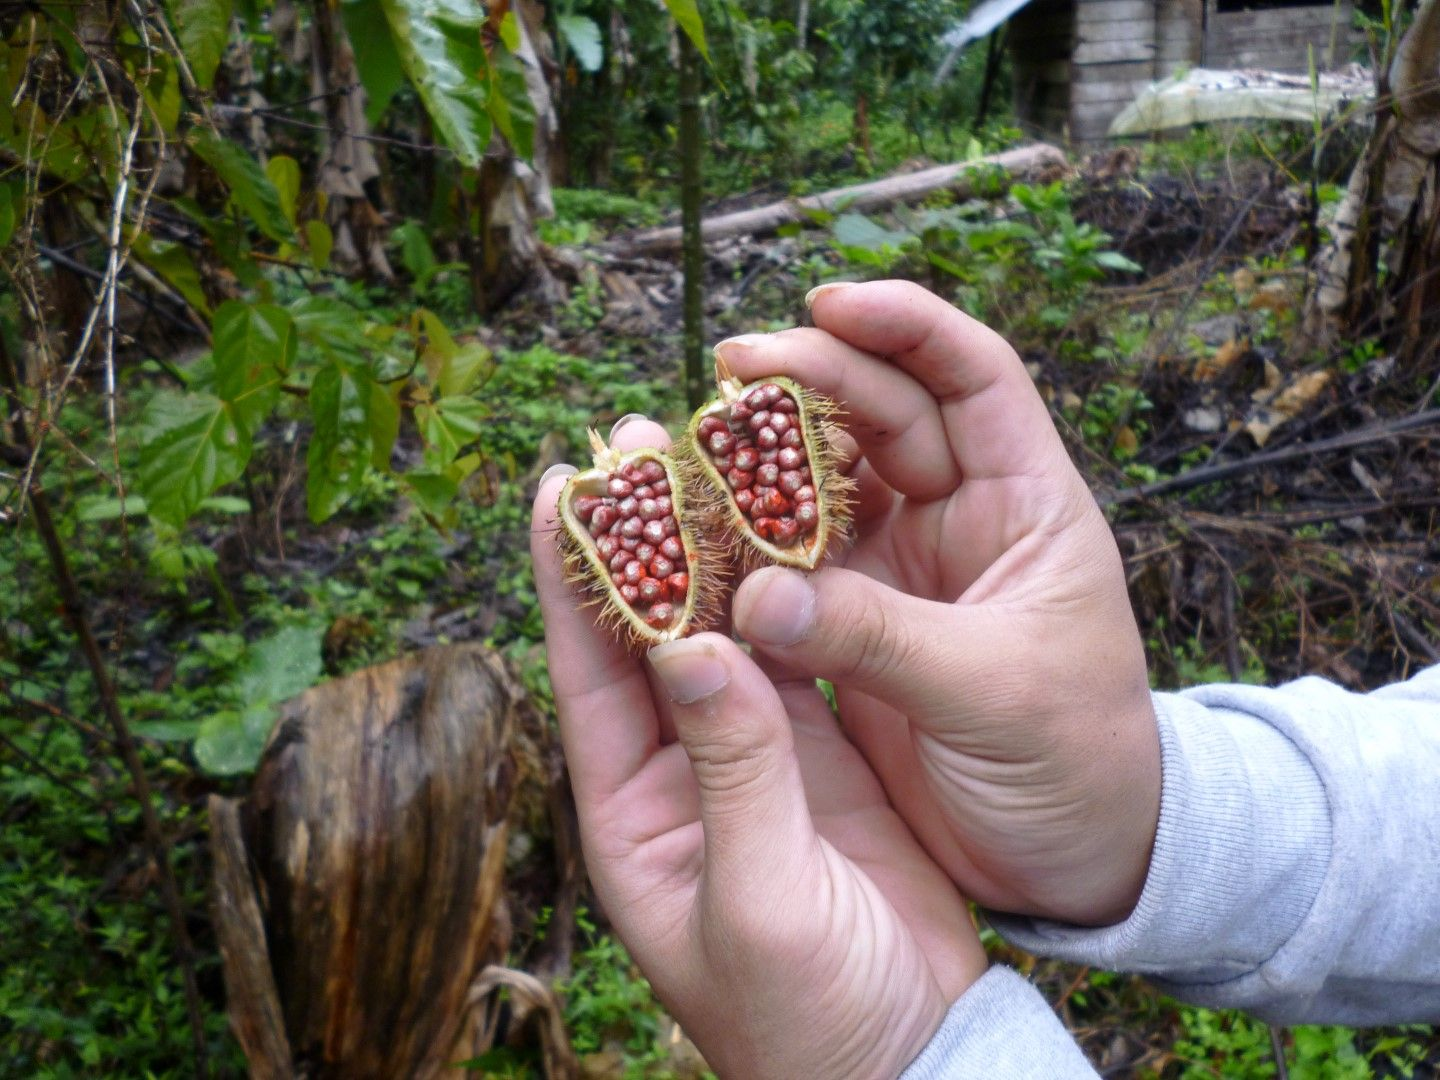 Showing exotic seeds found in a tree in Ecuador